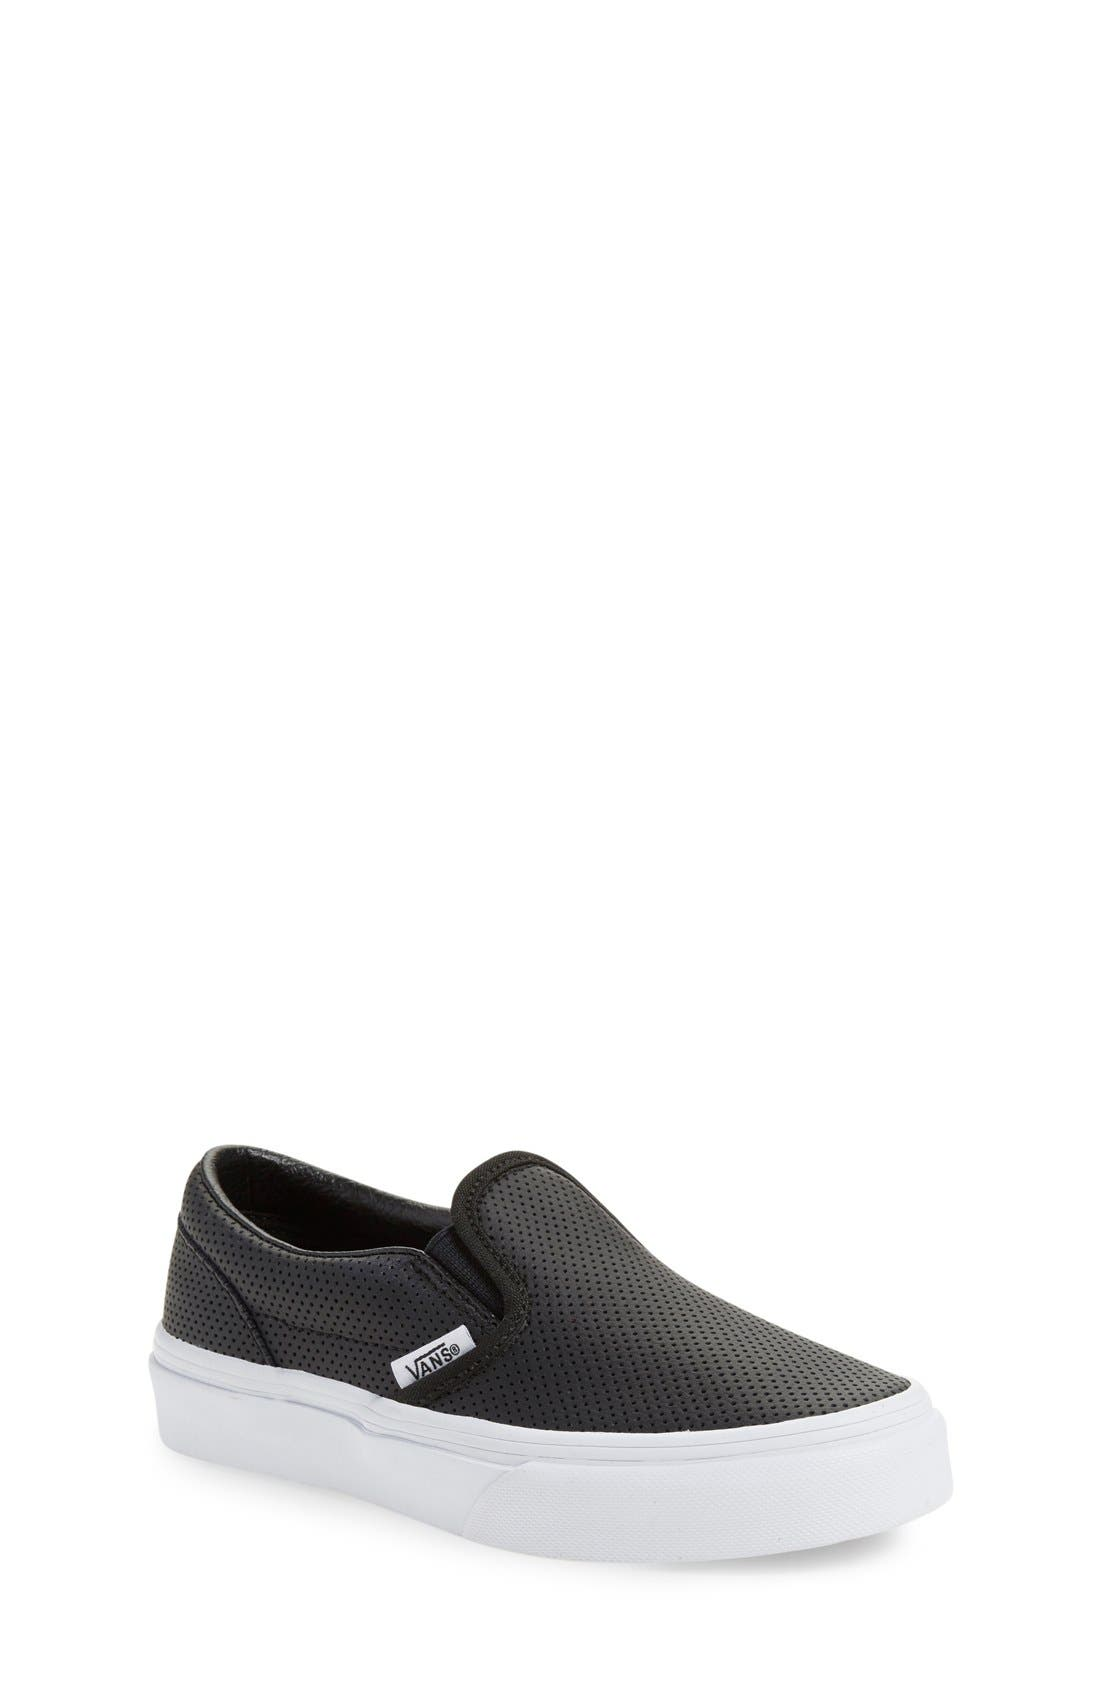 VANS 'Classic' Slip-On Sneaker, Main, color, BLACK LEATHER